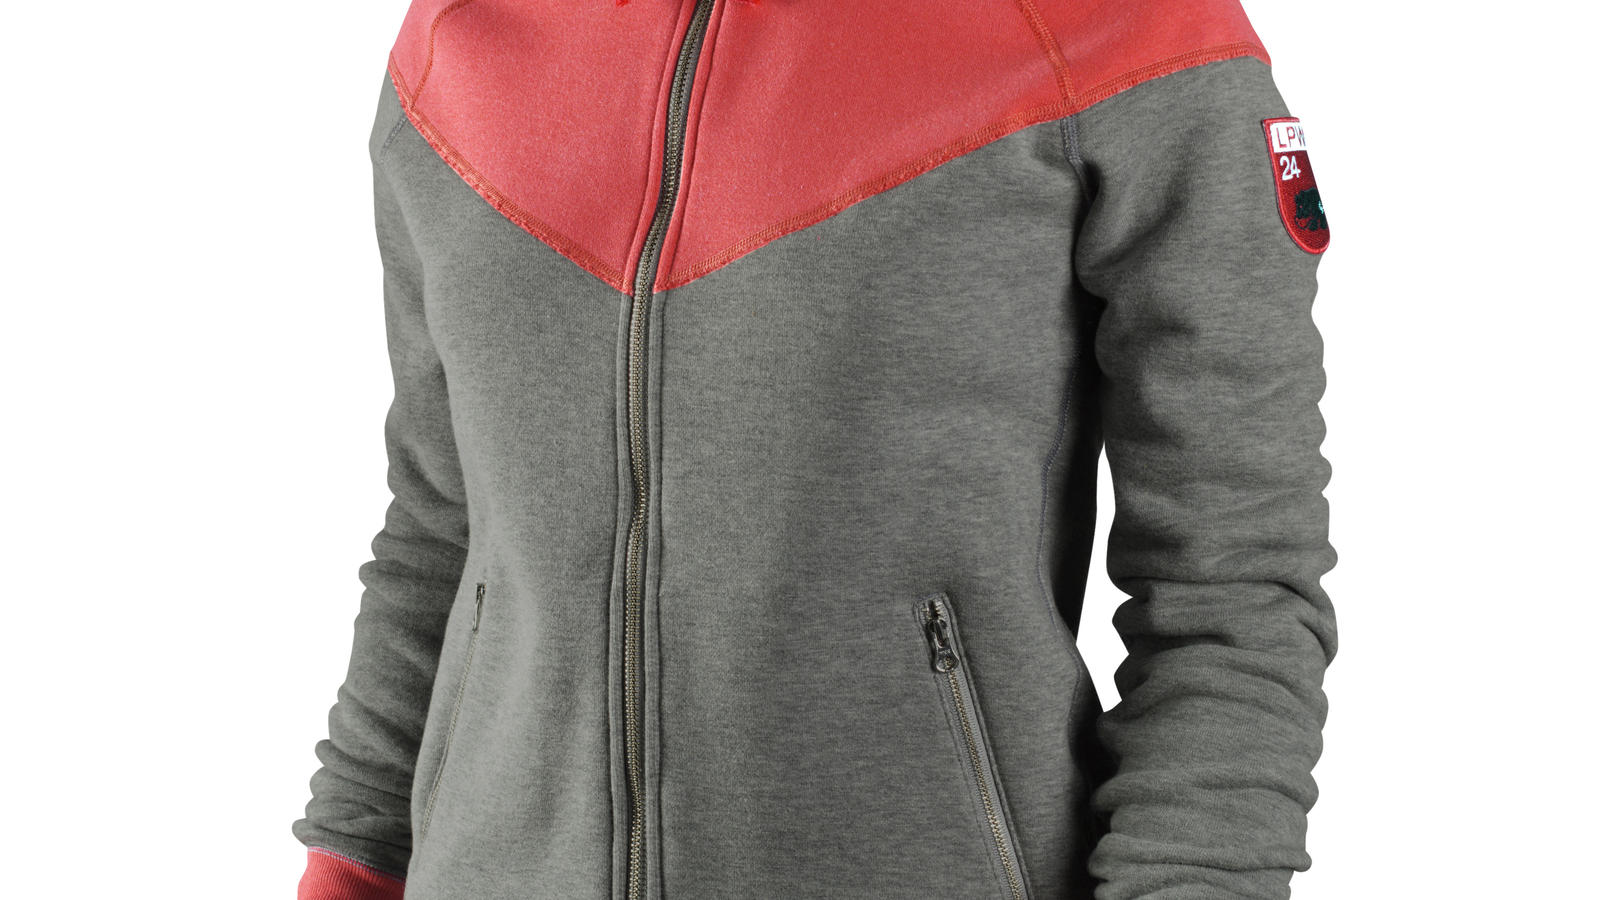 Nike Collection 2009 News Sportswear Fallholiday hQrdxtCs